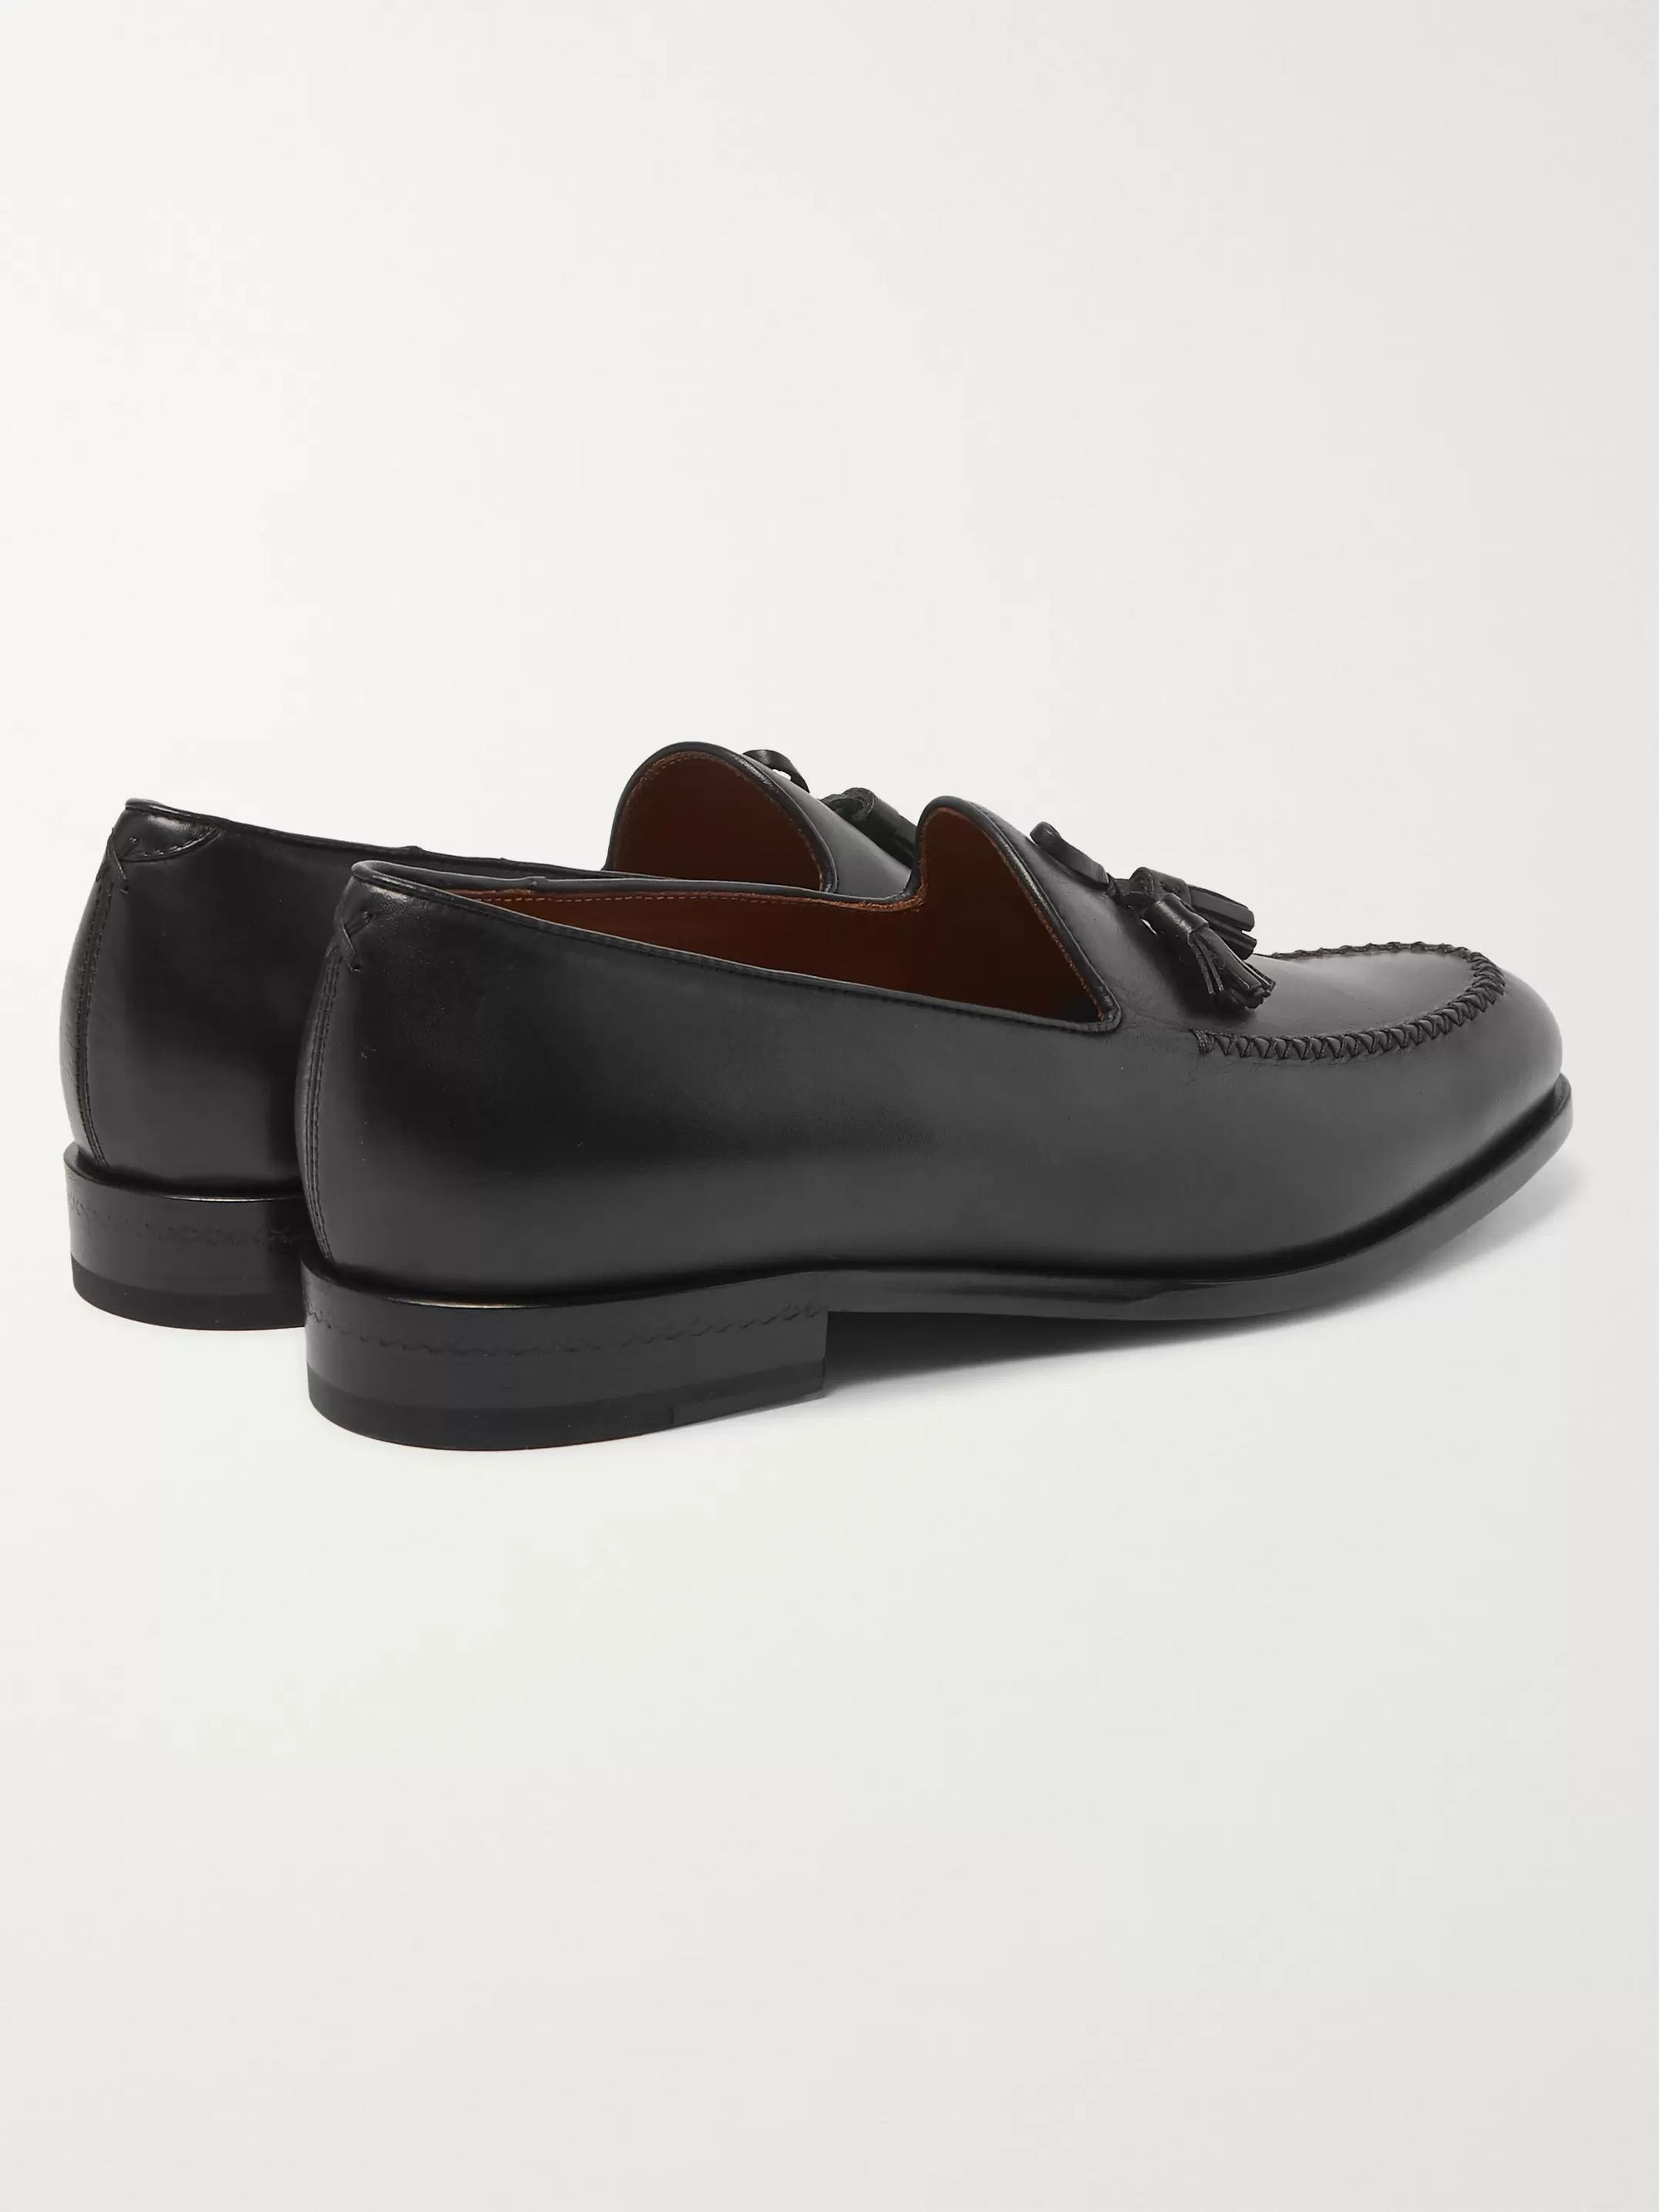 Ermenegildo Zegna Patrizio Tasselled Leather Loafers